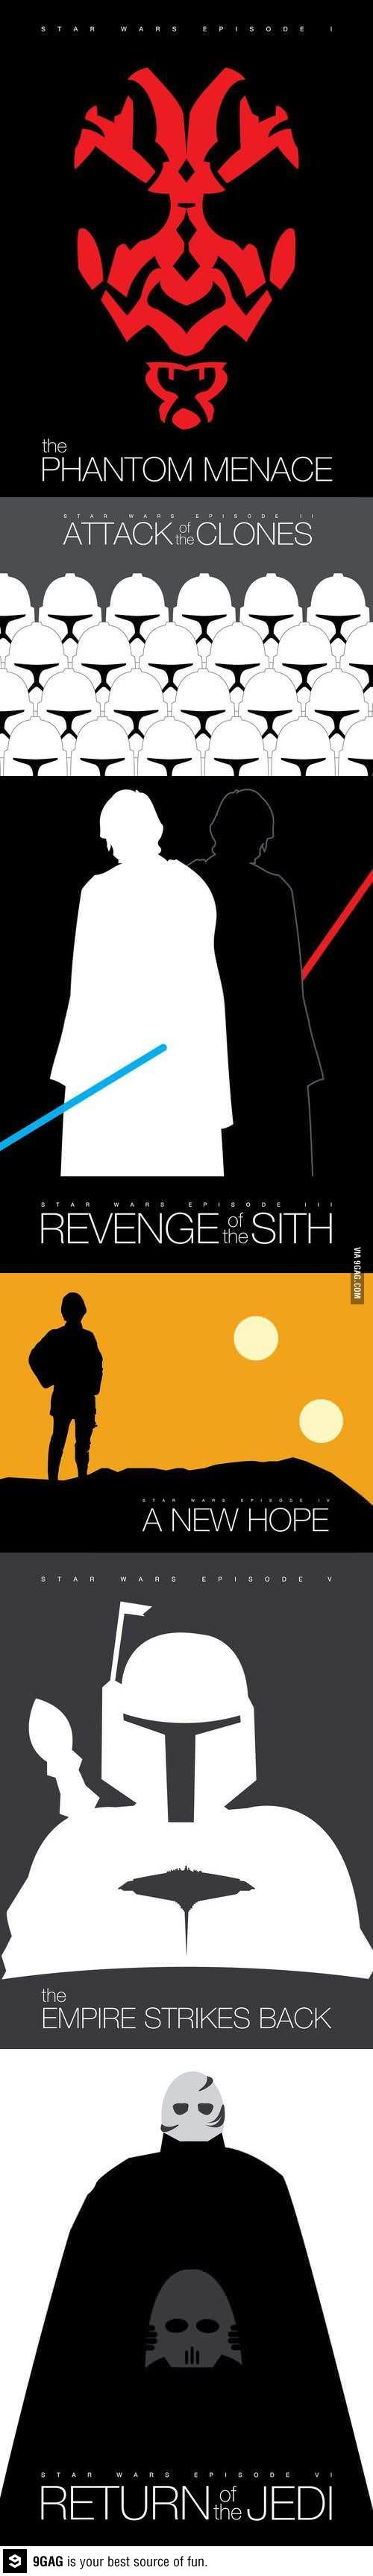 Amazing Star Wars Posters.